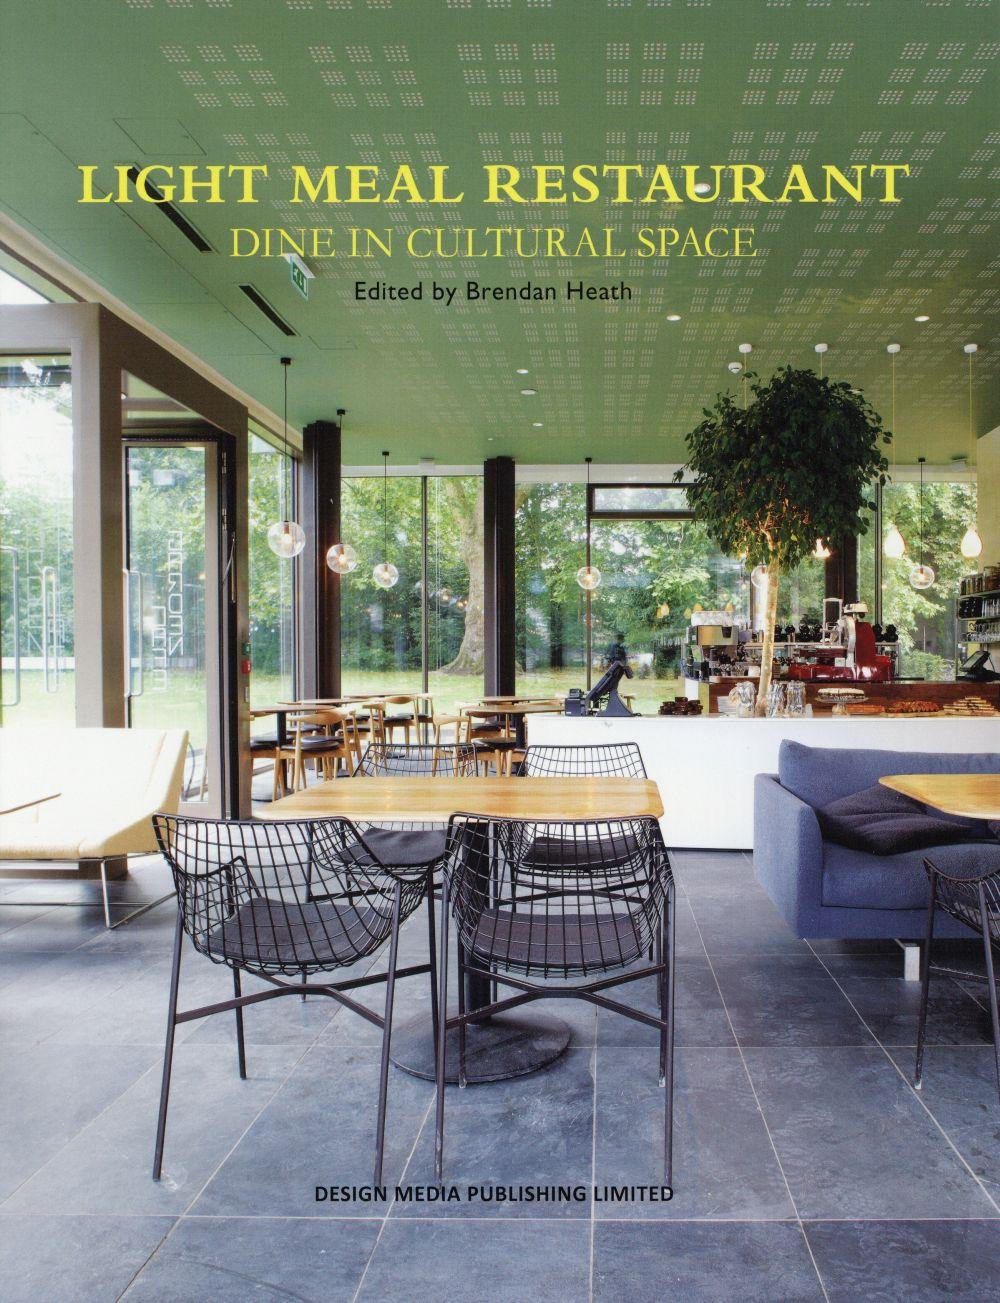 Light meal restaurant ; dine in cultural space  - Brendan Heath